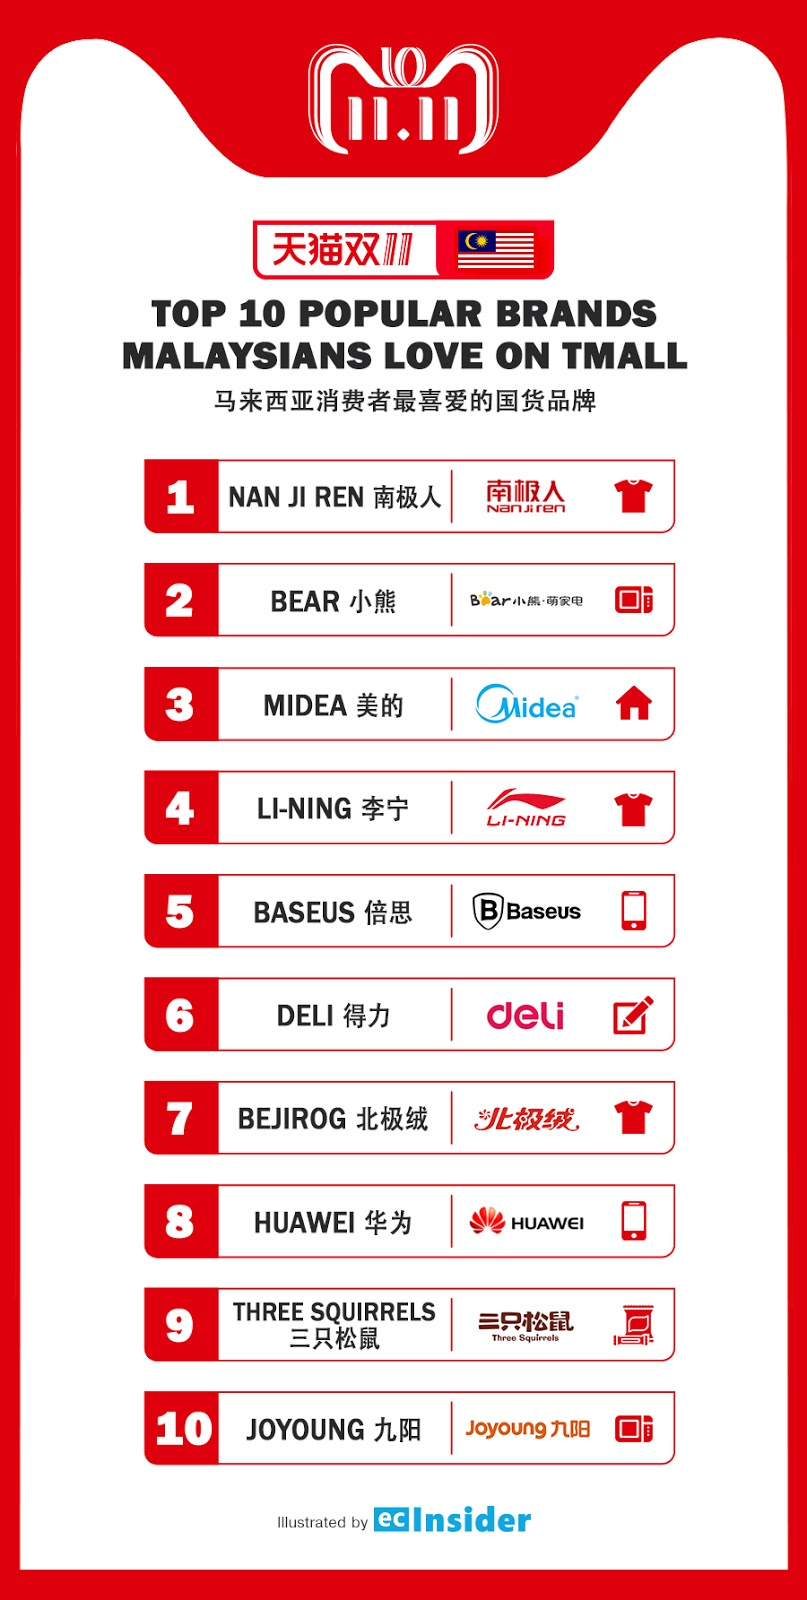 Top 10 popular brands Malaysians love on Tmall